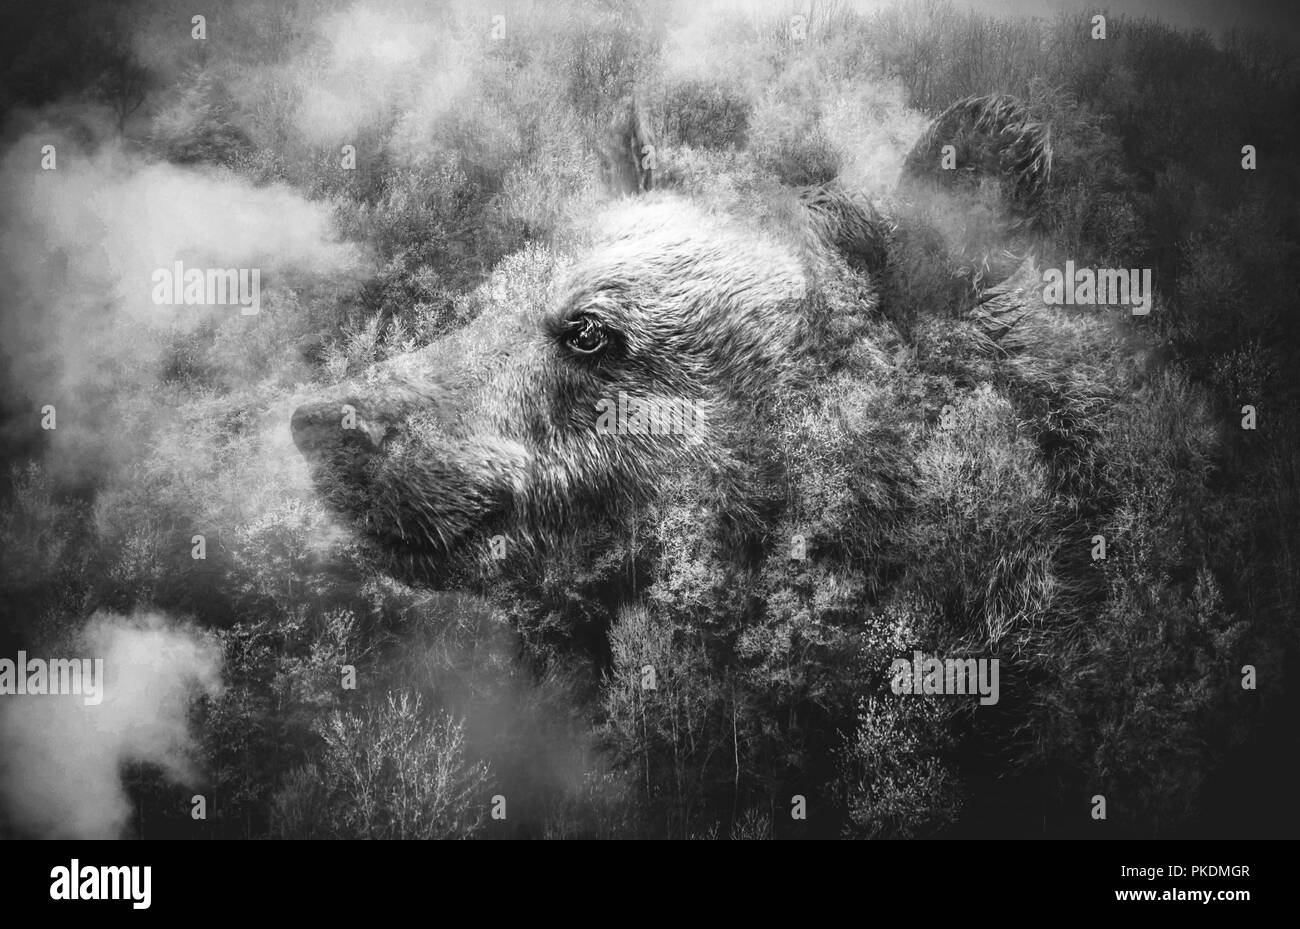 Black and White Collage: Bears Head and the Misty Forest. Double Exposition. - Stock Image